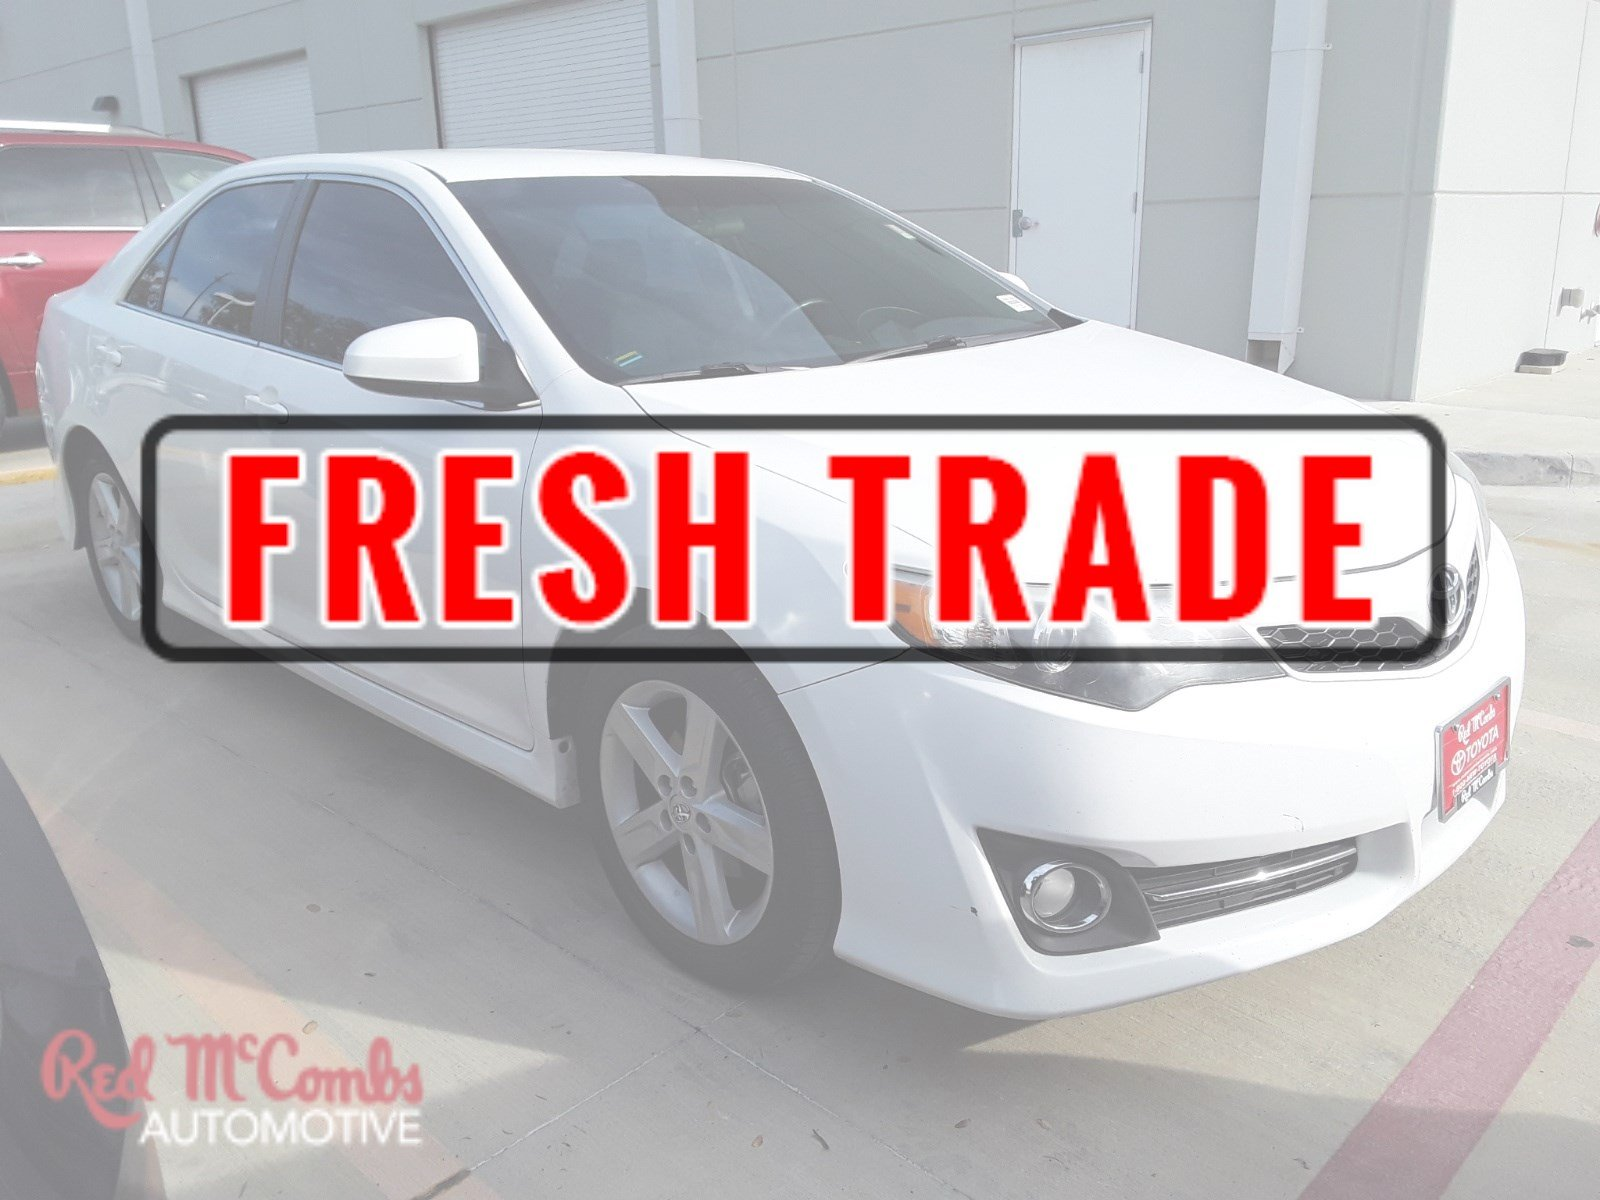 Pre Owned 2014 Toyota Camry SE 4dr Car in San Antonio B